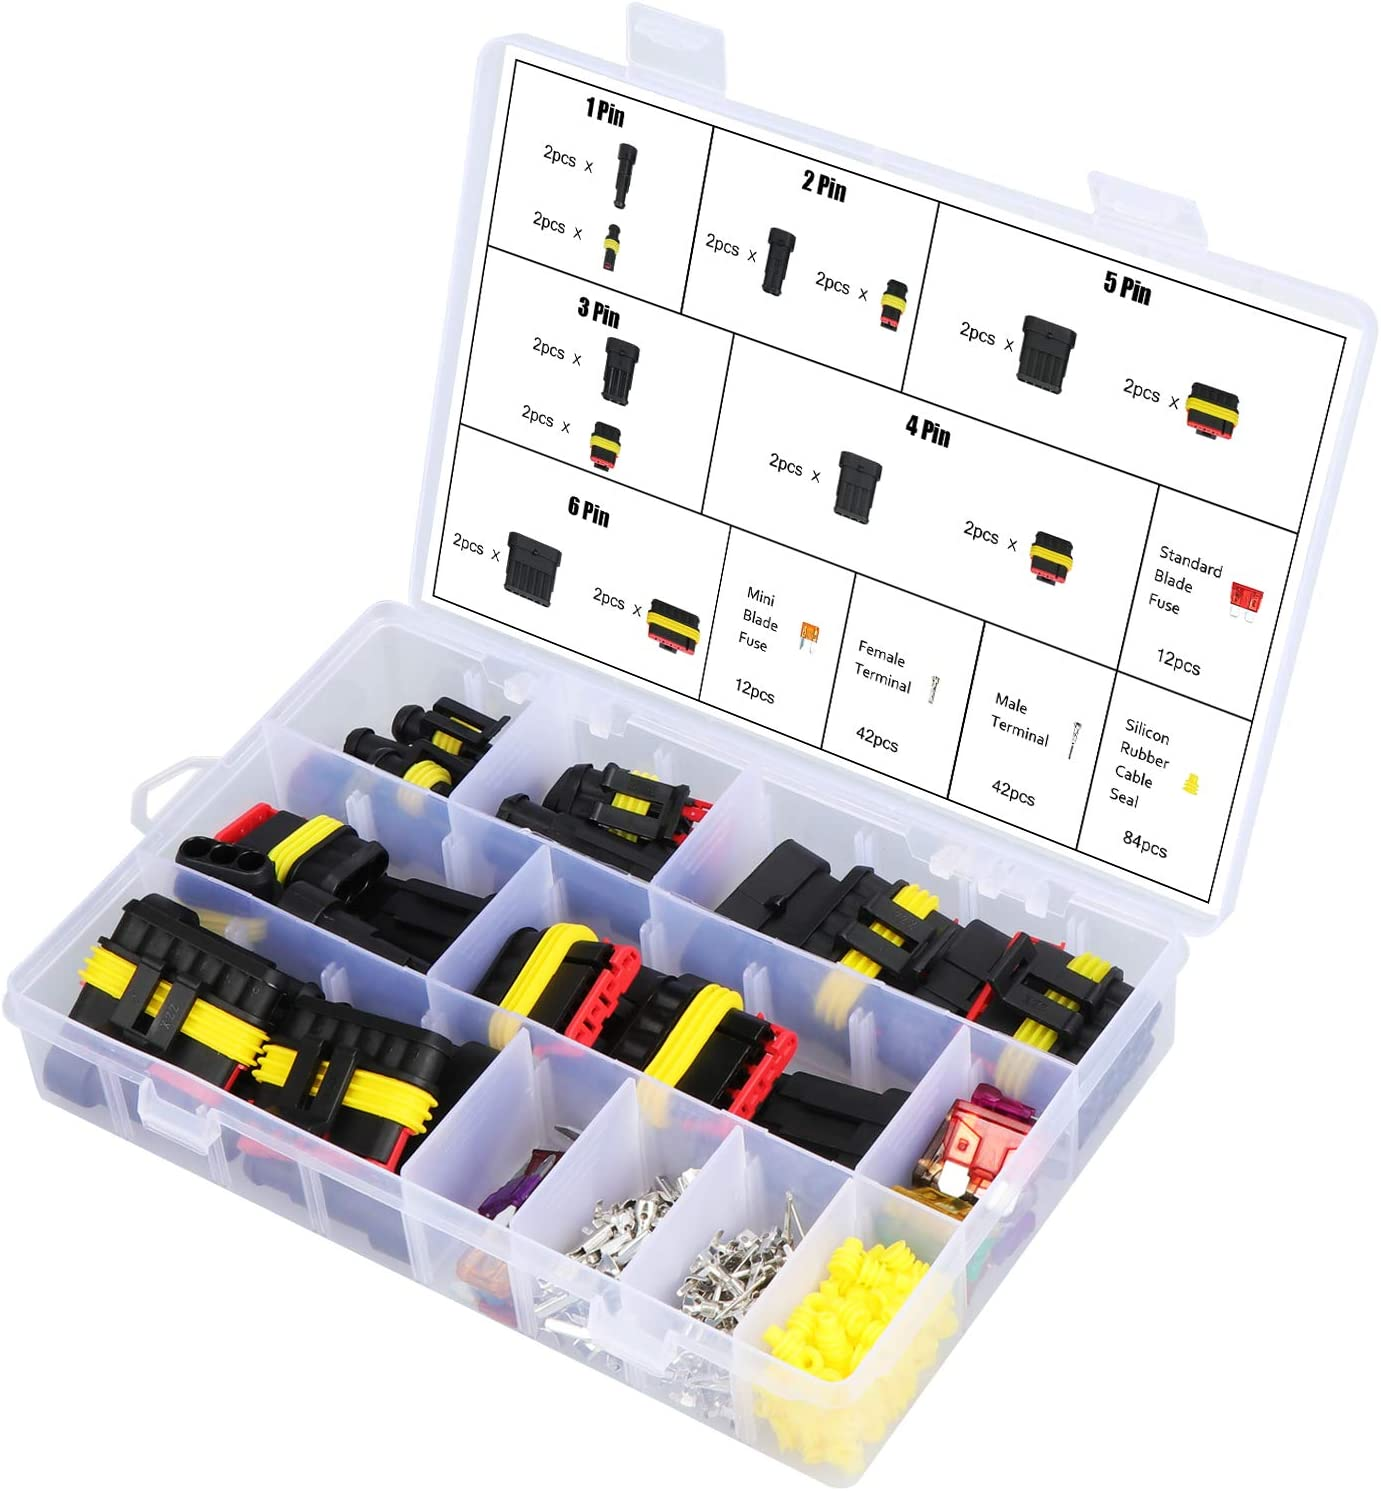 240Pcs Car Electrical Wire Connector with Terminal and Fuses Box Assortment Kit for Vehicle Motorcycle Auto 1 2 3 4 5 6 Pin Plug